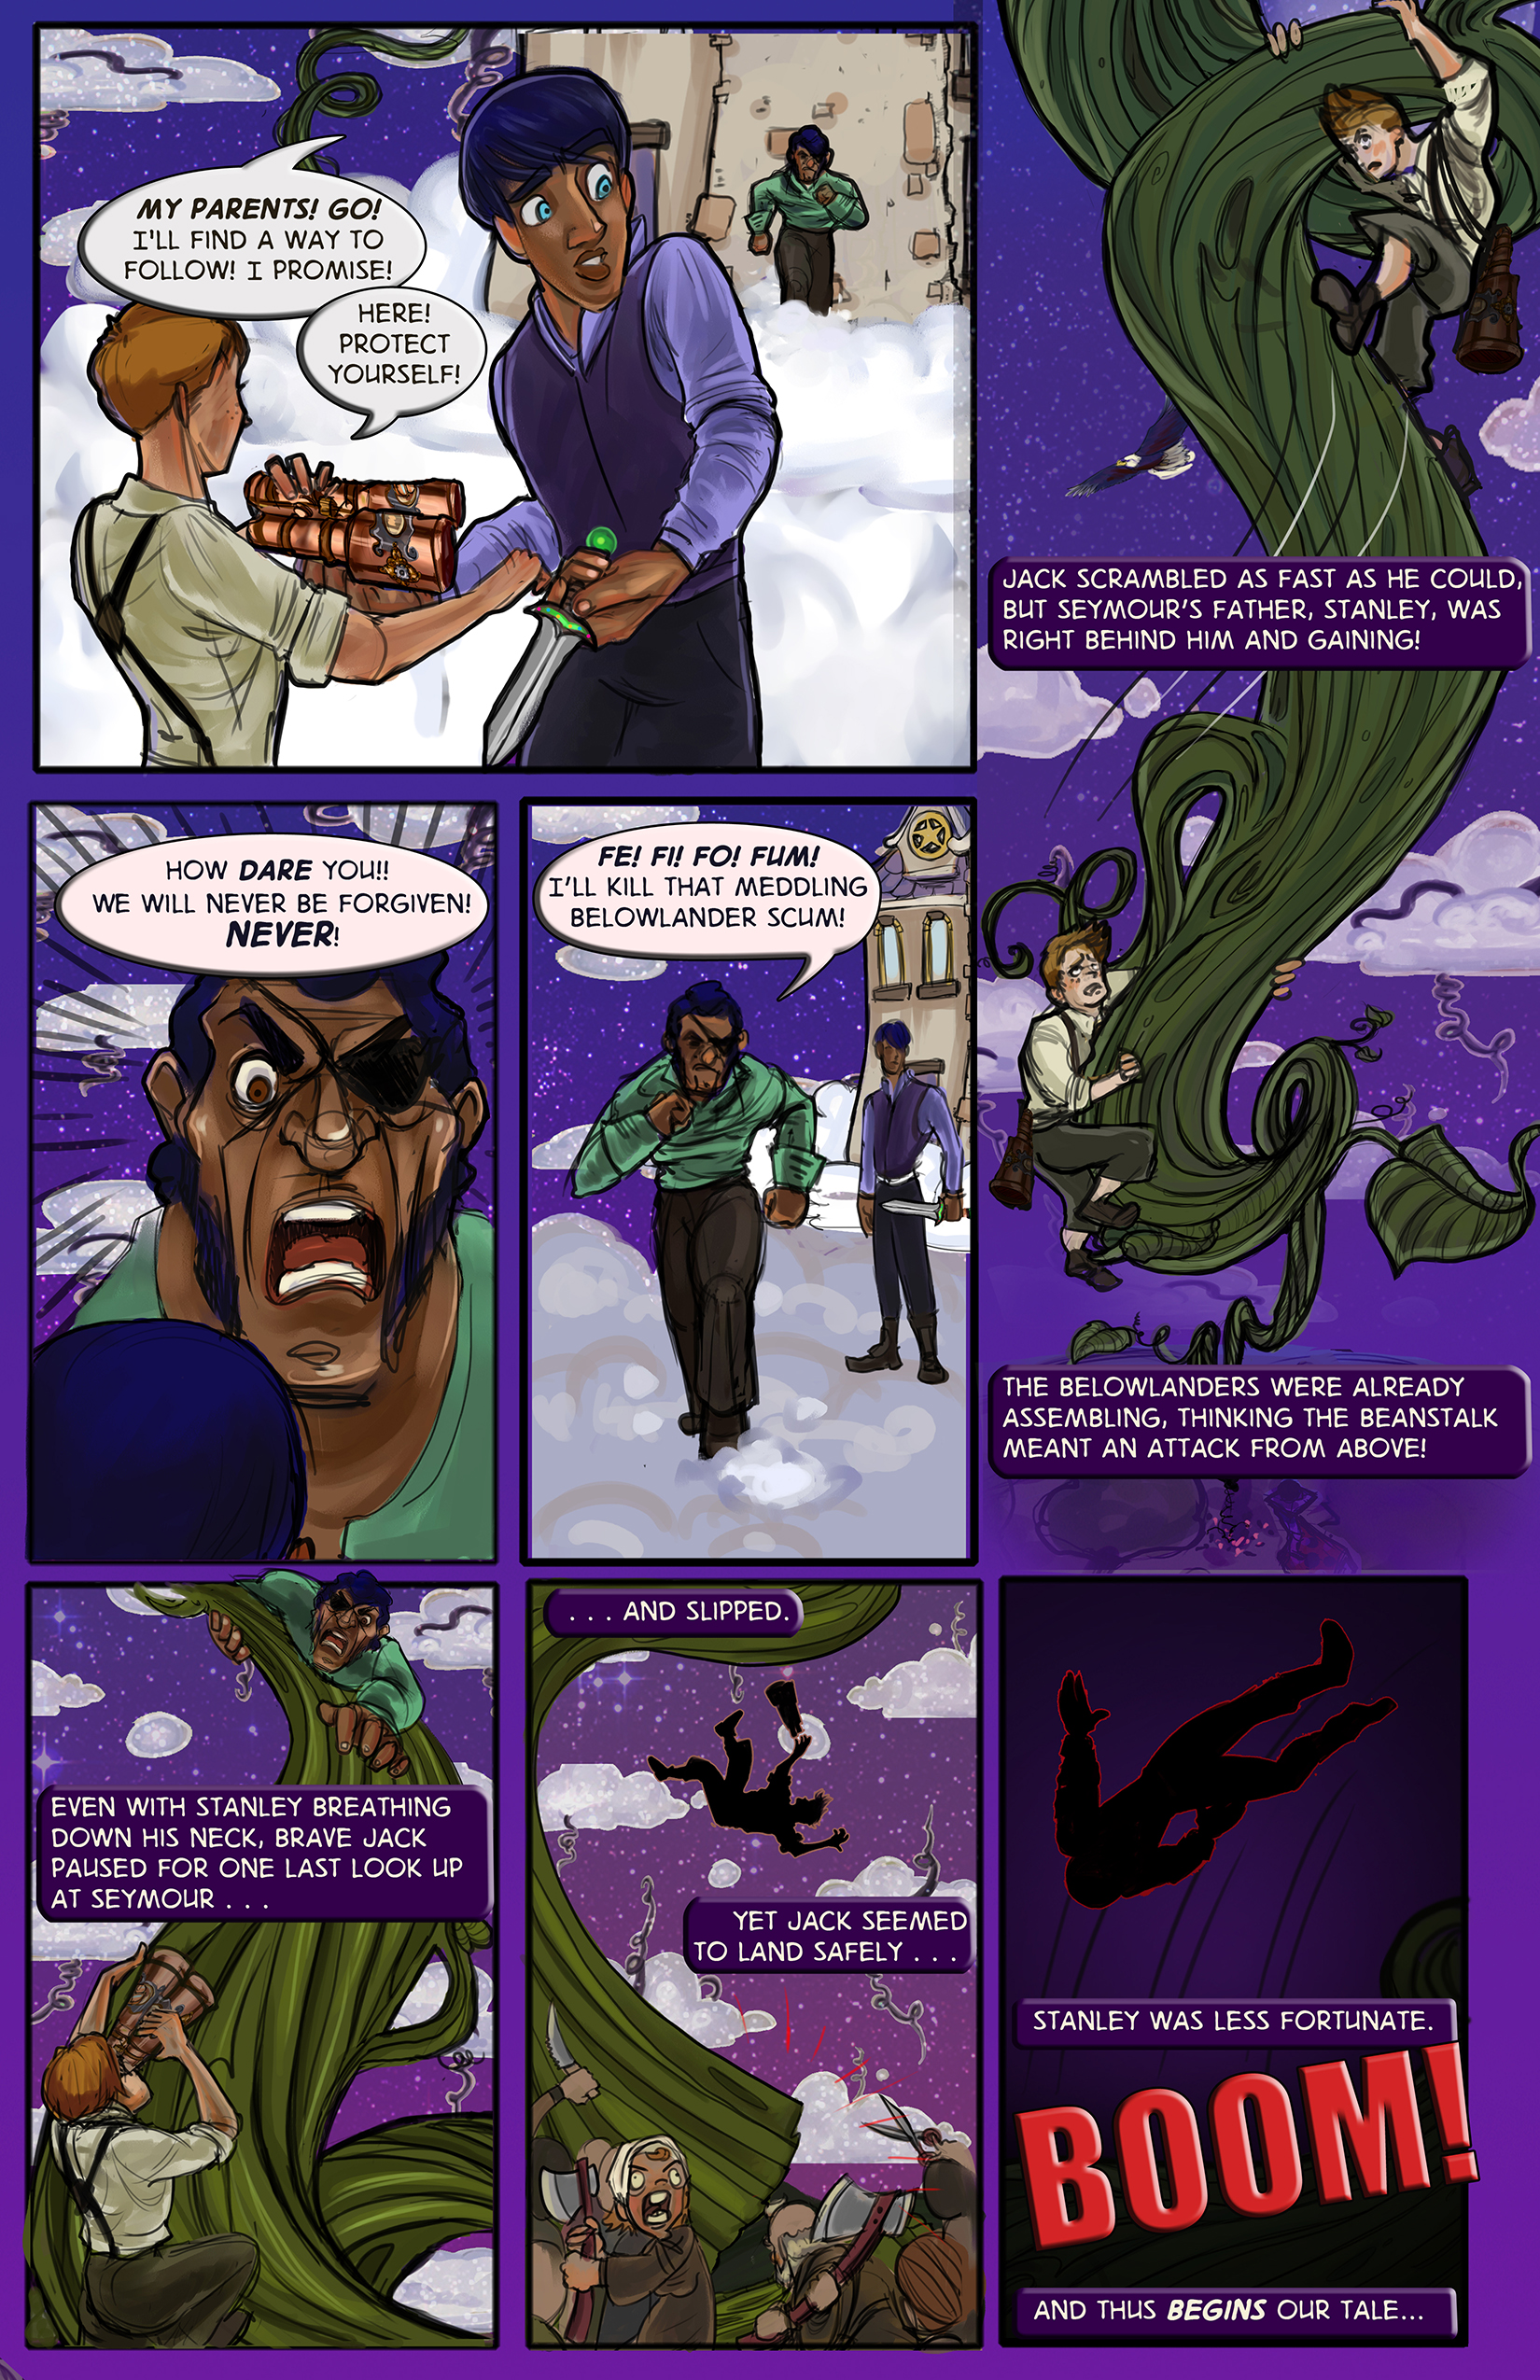 The Tale of Seymour Deeply - Page 8